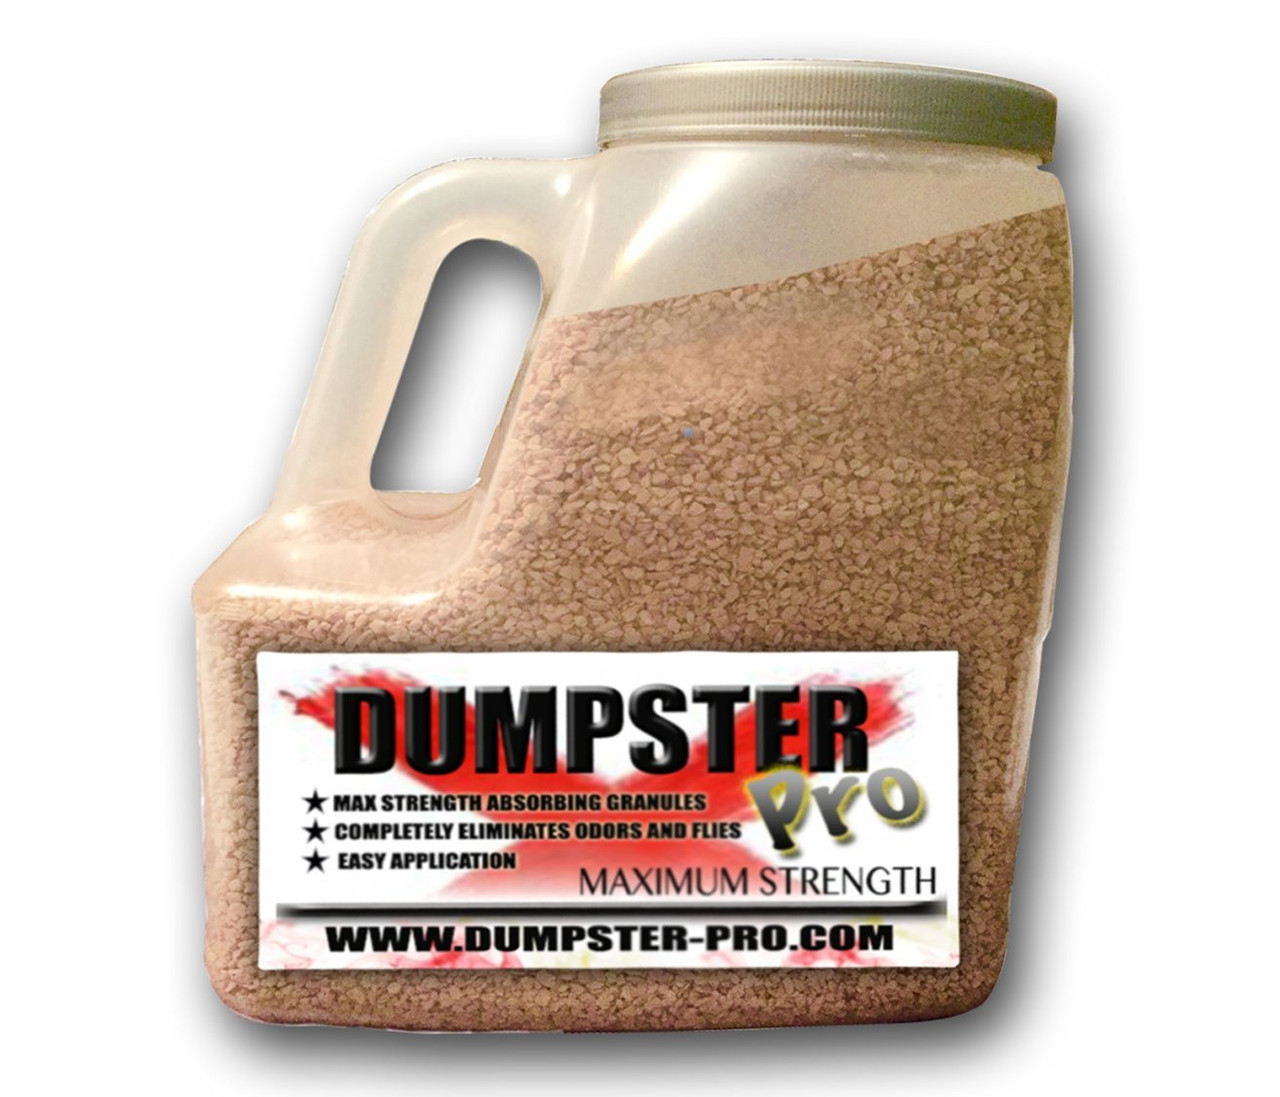 Dumpster Pro - 7 LBS - Garbage Deodorizer Absorbing Granules to Eliminates Odors and Flies